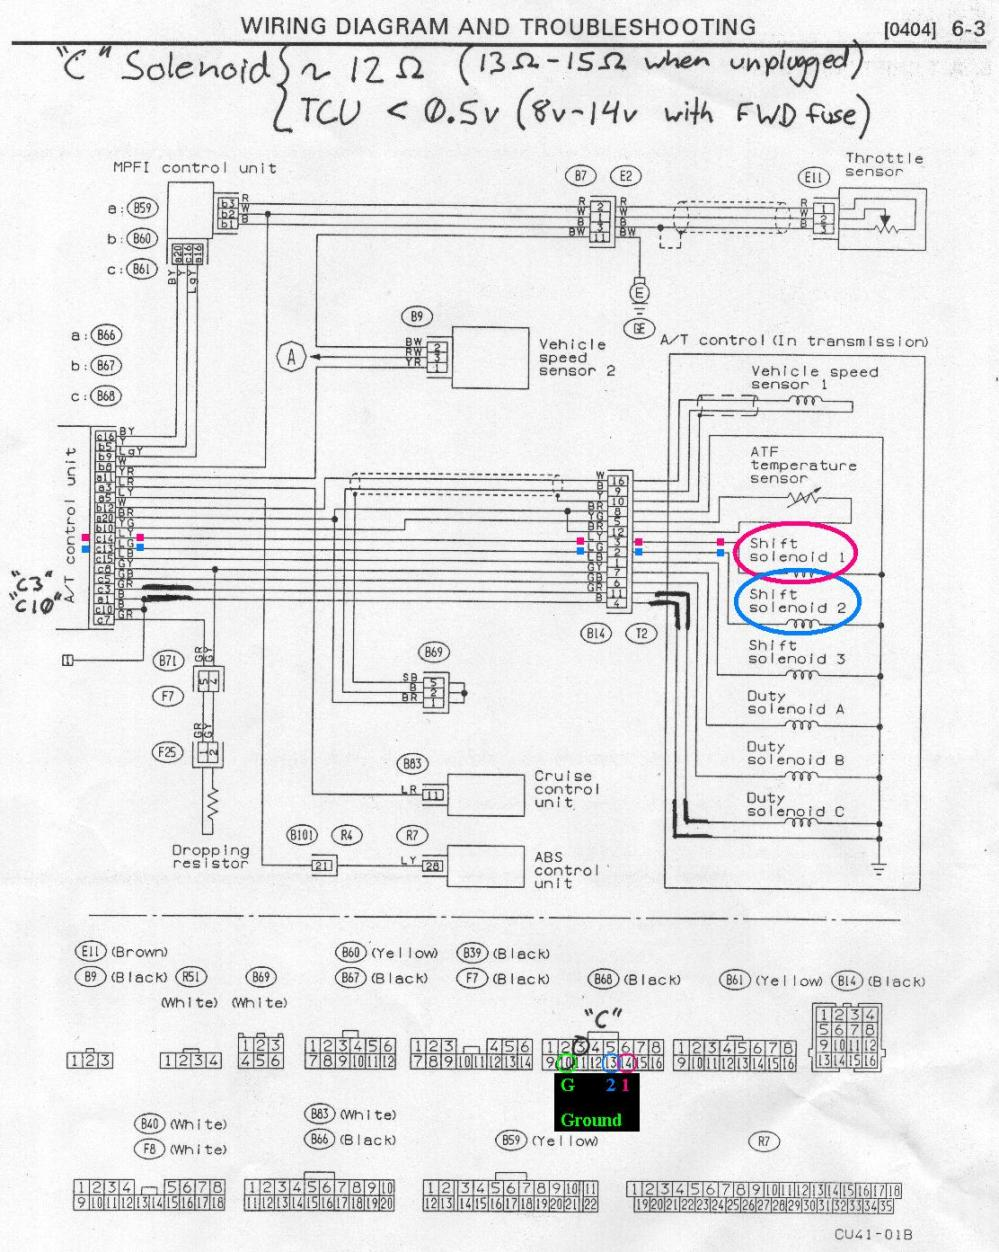 medium resolution of 1998 subaru legacy stereo wiring diagram 2005 subaru subaru ignition wiring diagram subaru radiator fan wiring